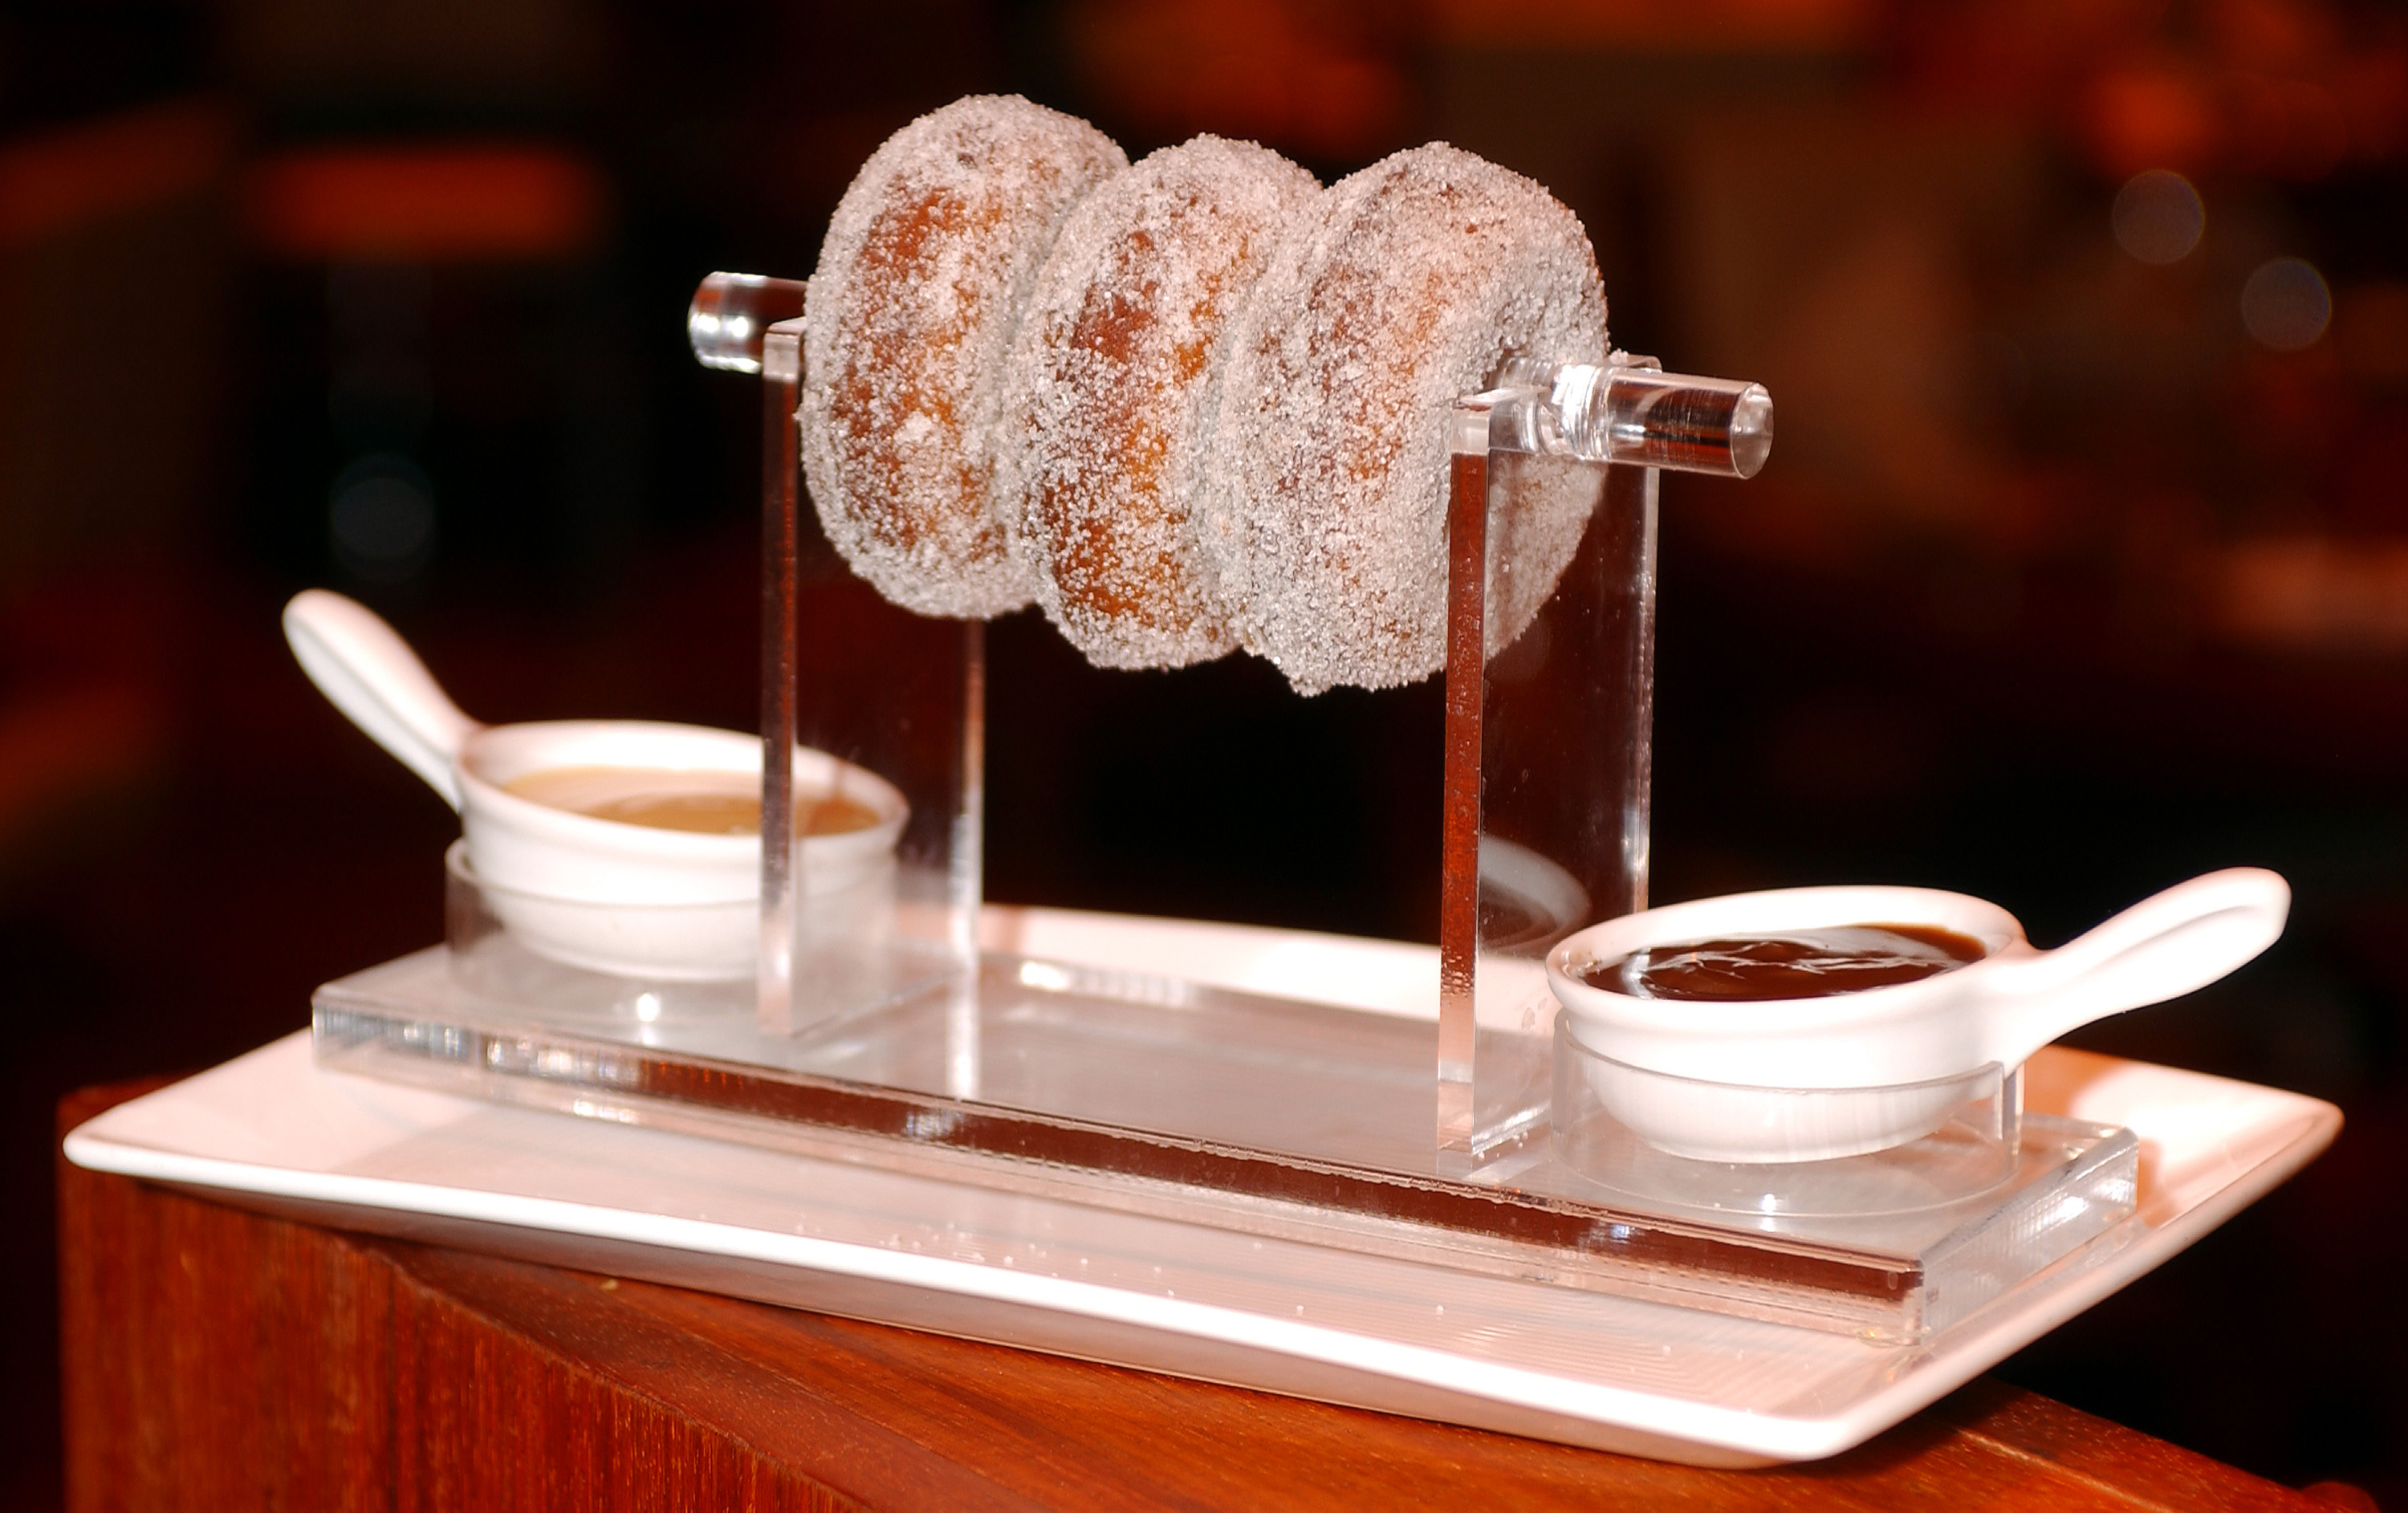 The dessert donuts at Fix, photo courtesy of Bellagio. By Denise Truscello.